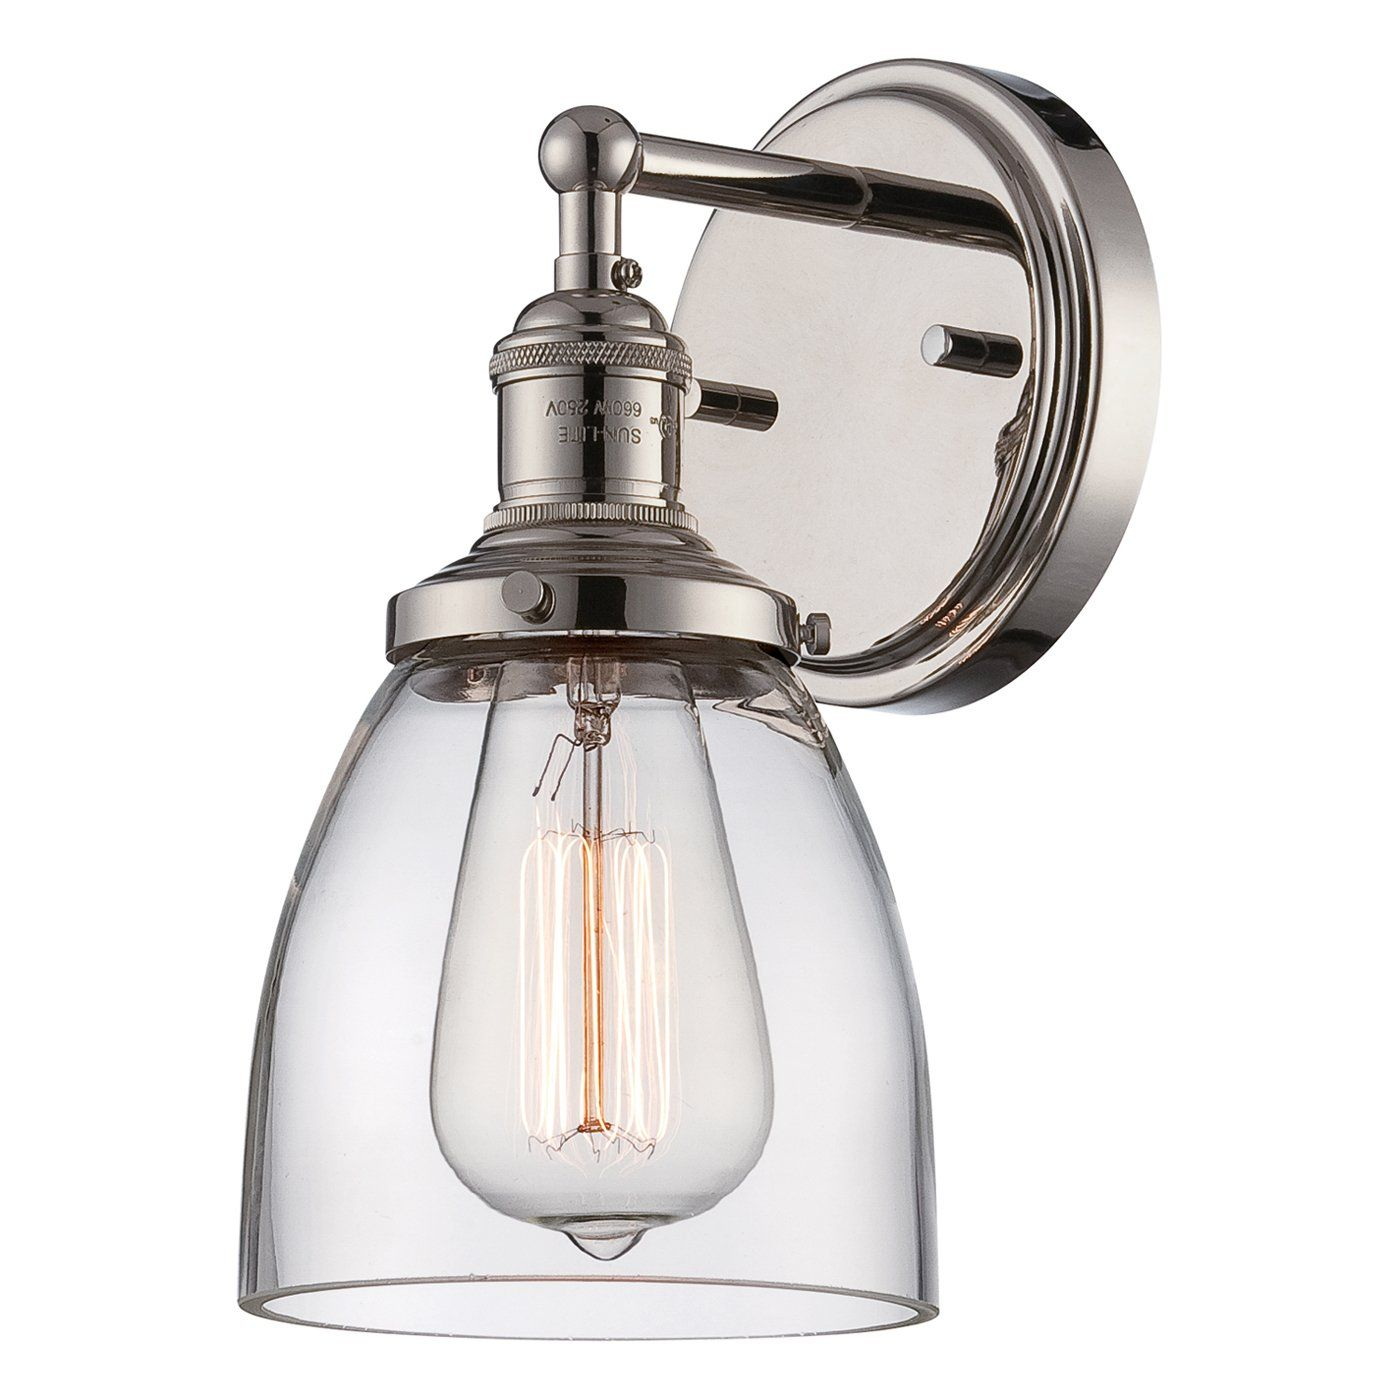 Nuvo Lighting 60 5 1 Light Vintage Wall Sconce At Atg Stores90 100